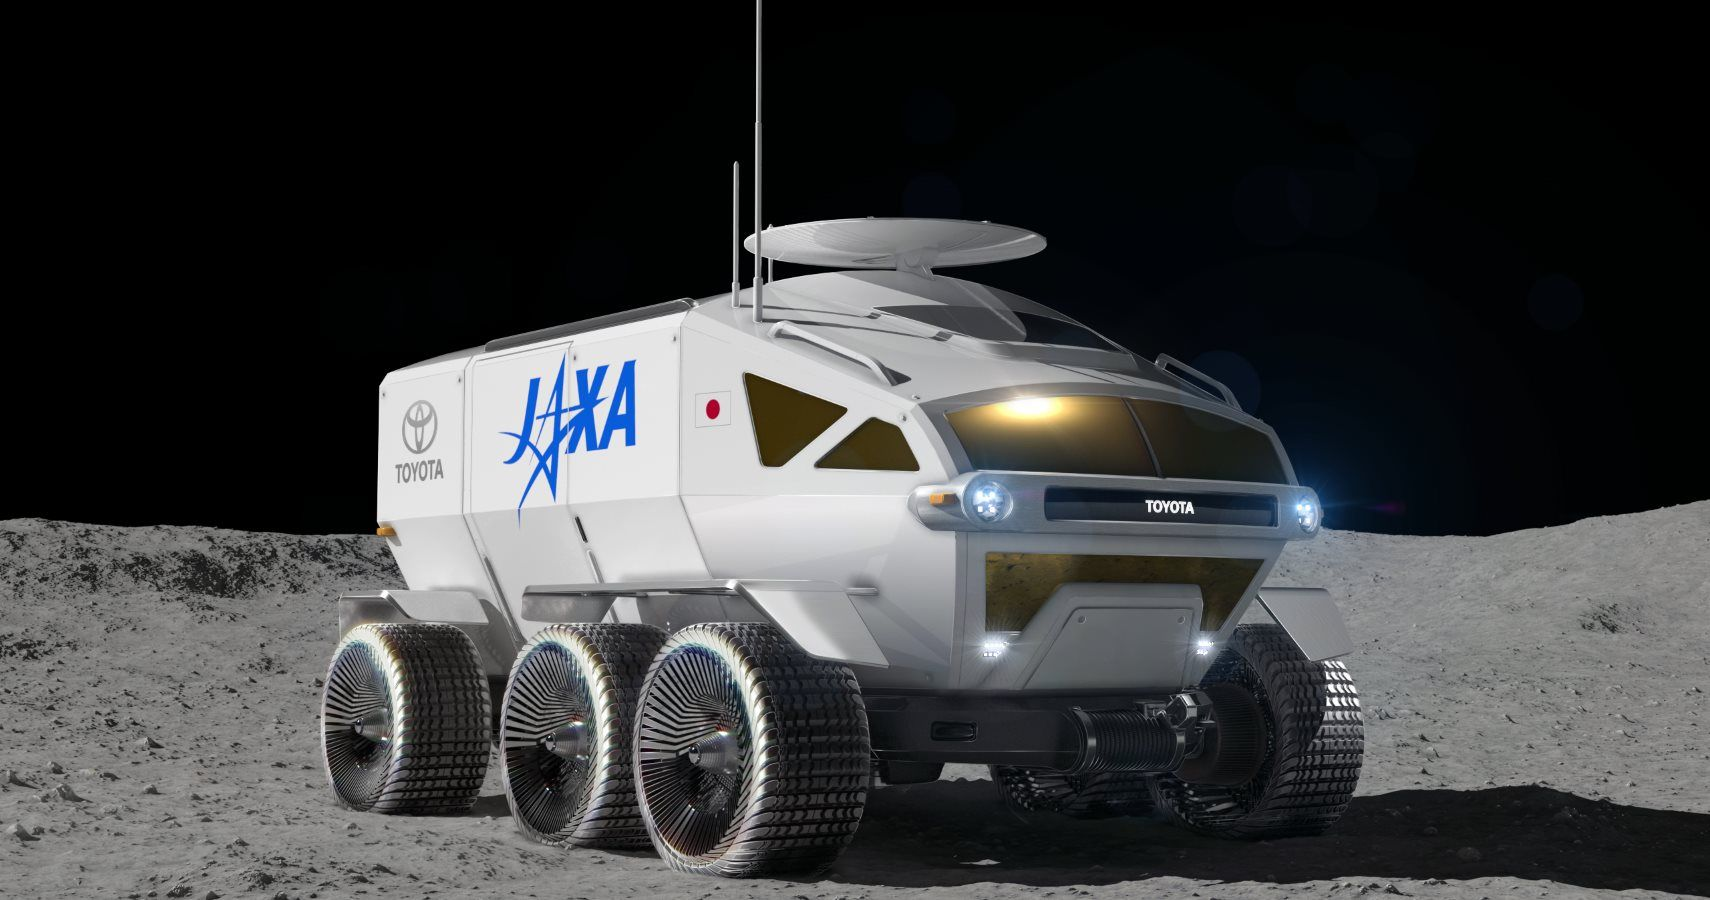 Toyota Signs Deal To Make Minivan For The Moon